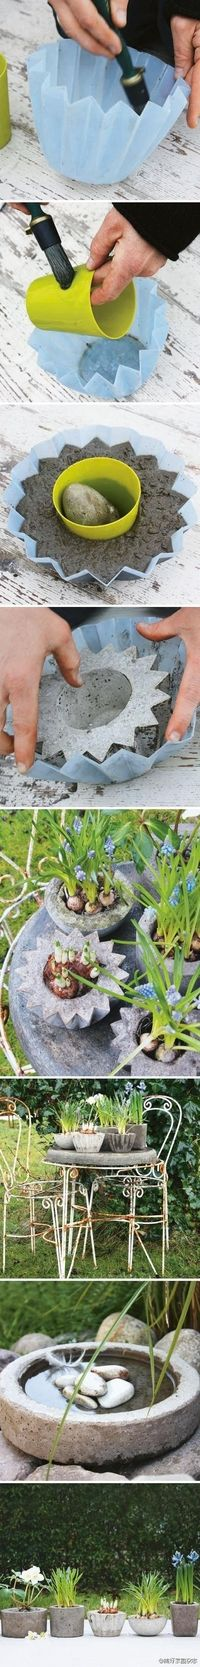 make your own planters, no instructions, just an idea to research later